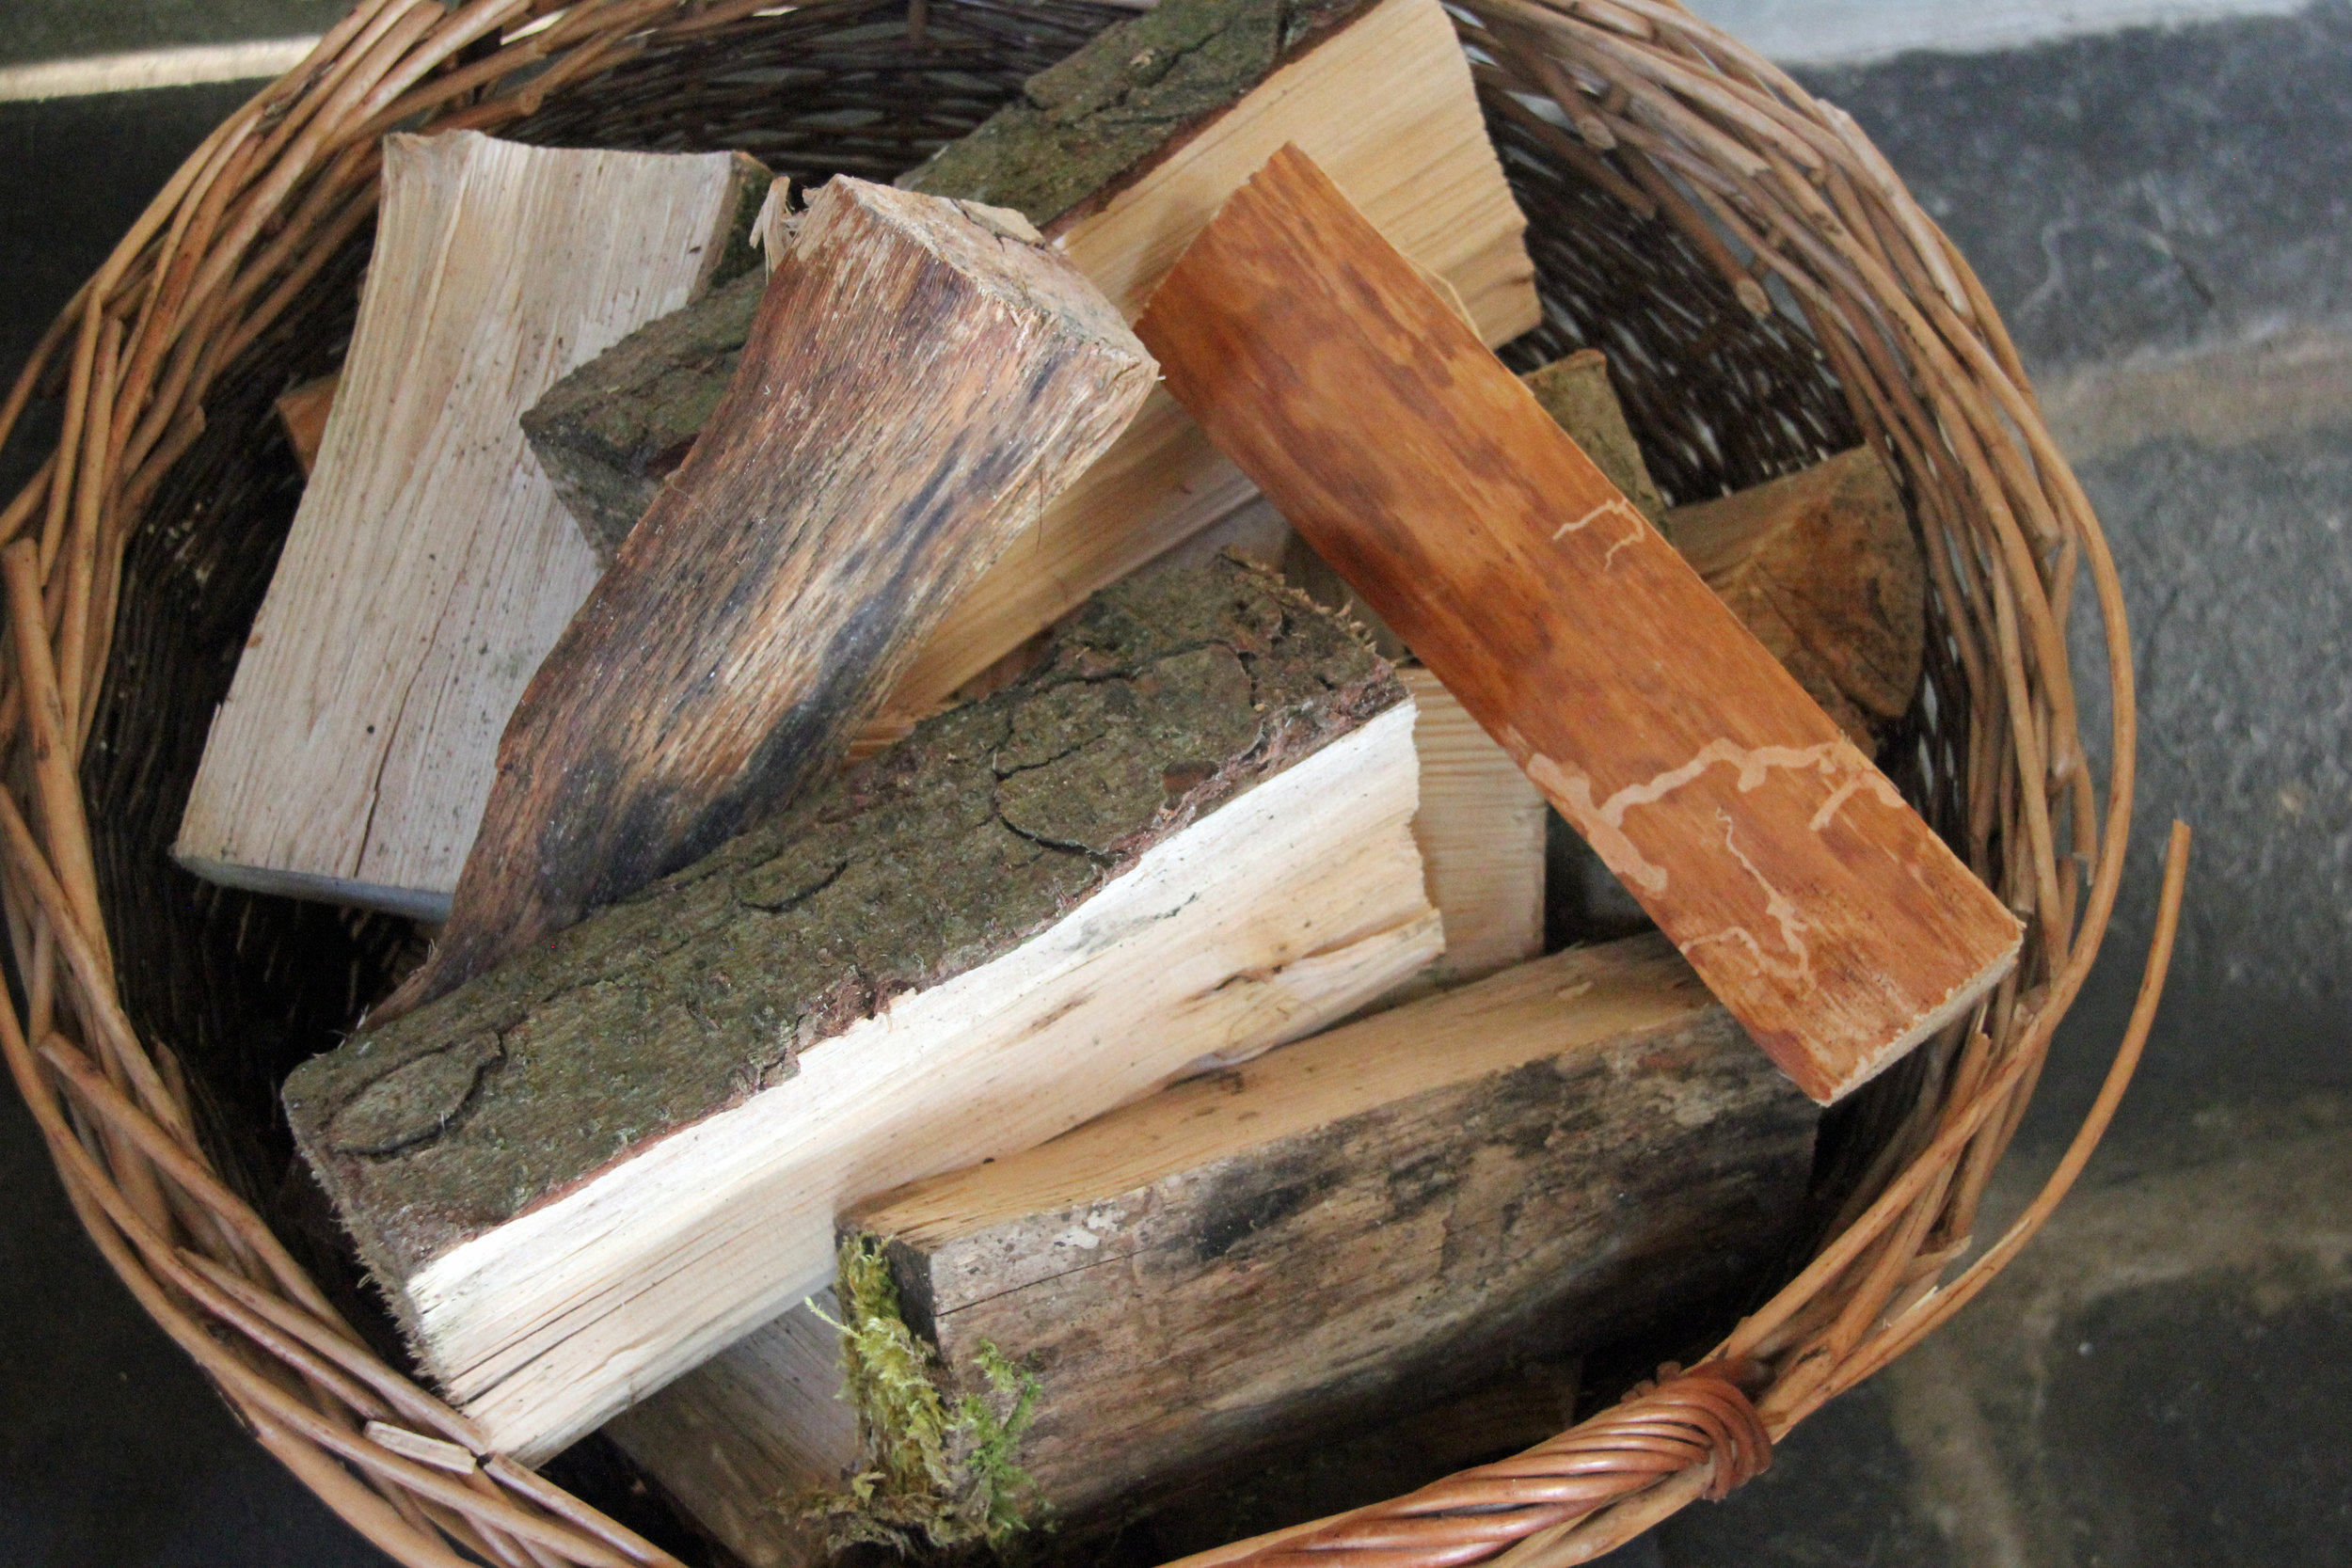 The Drovers Retreat log basket with wood from Graig Farm